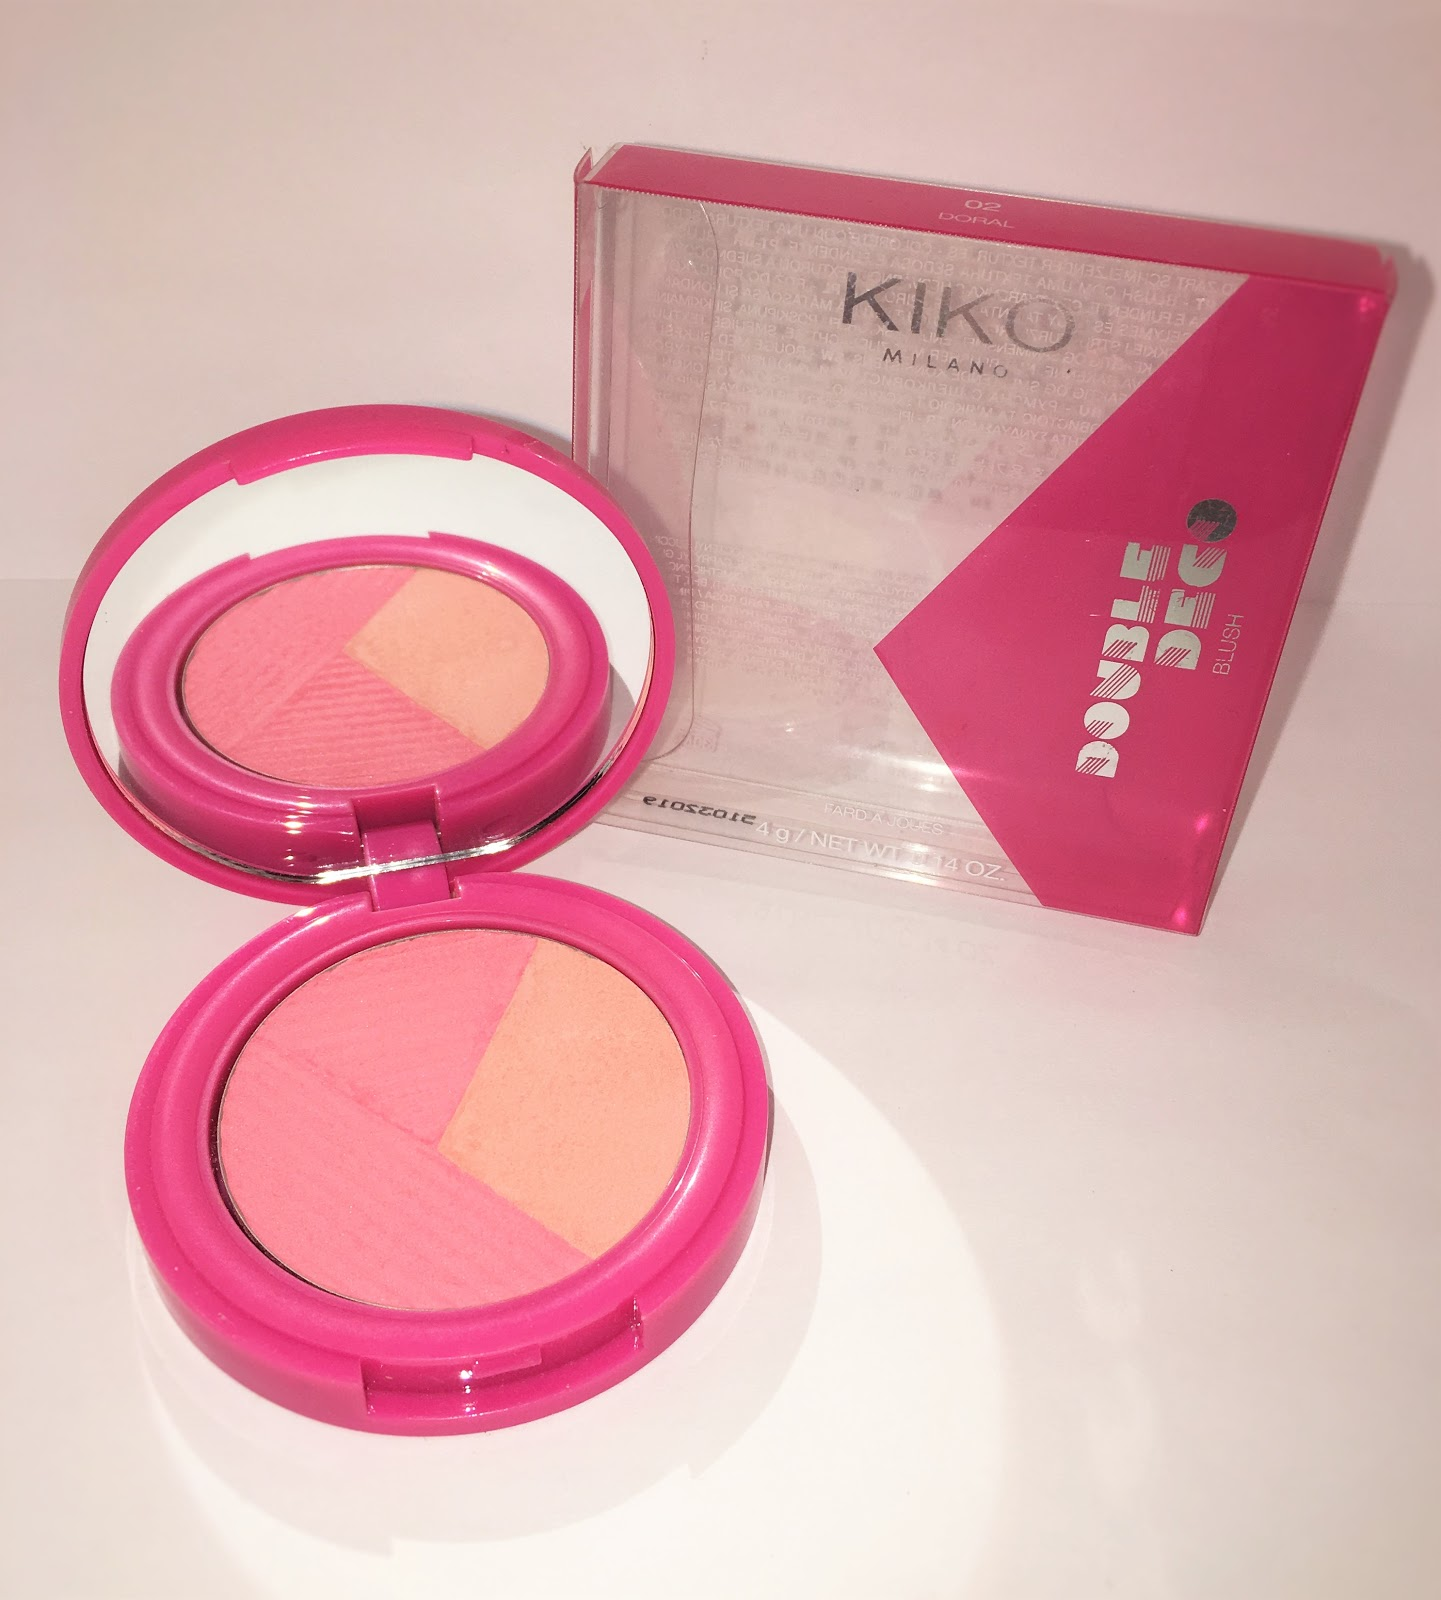 GlowByFlo: Kiko Milano - Miami Beach Double Deco Blush